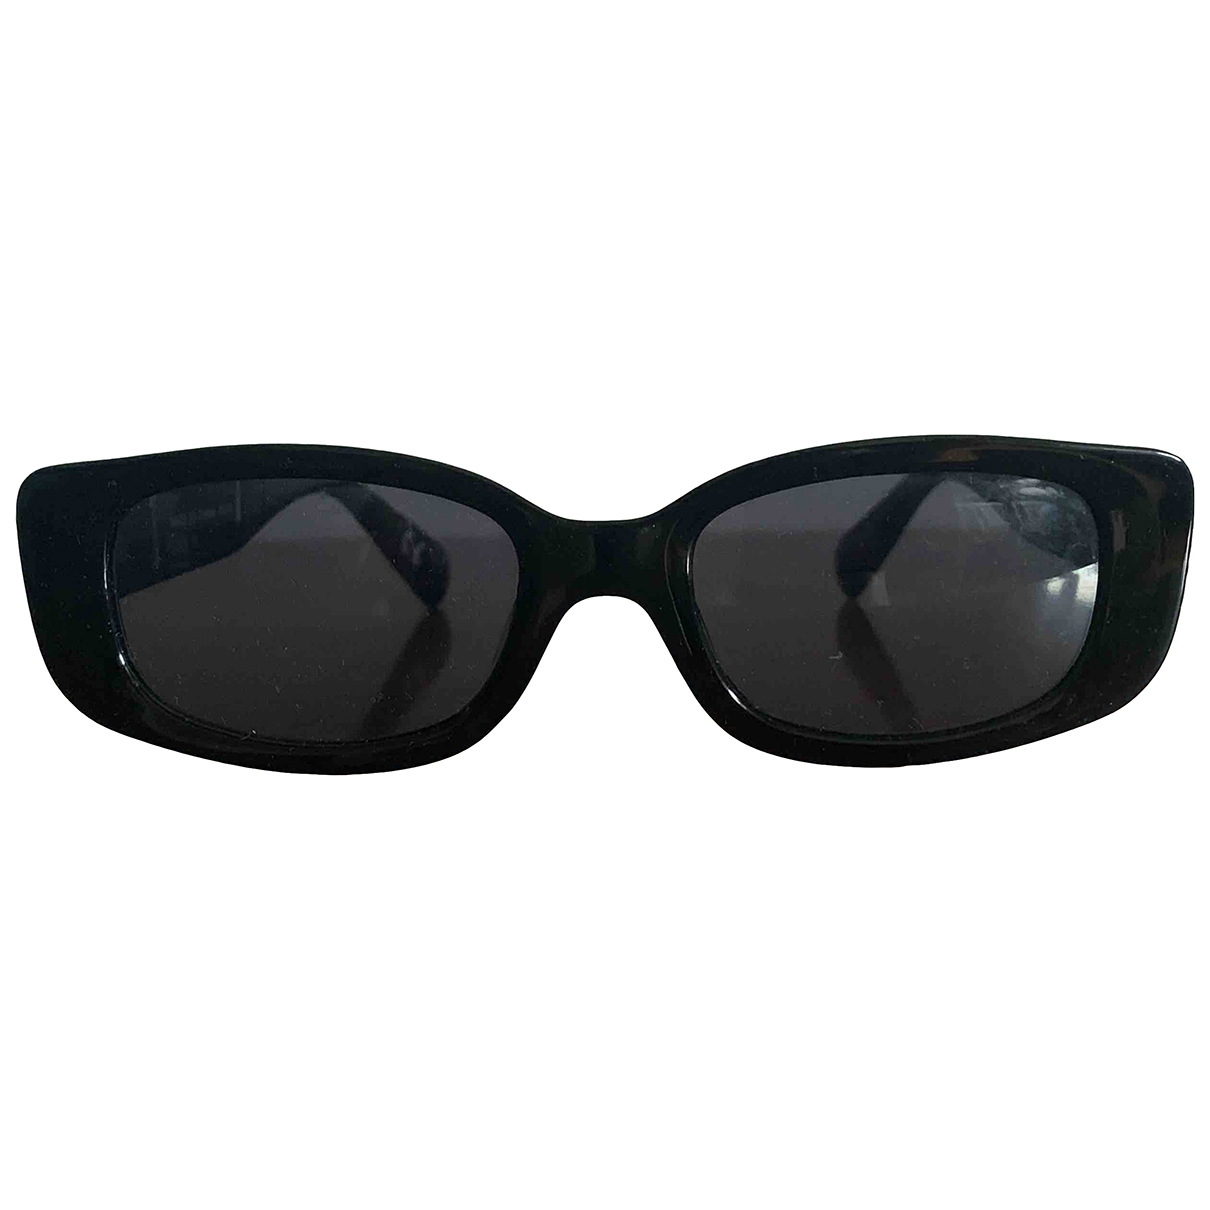 Vans \N Black Sunglasses for Women \N